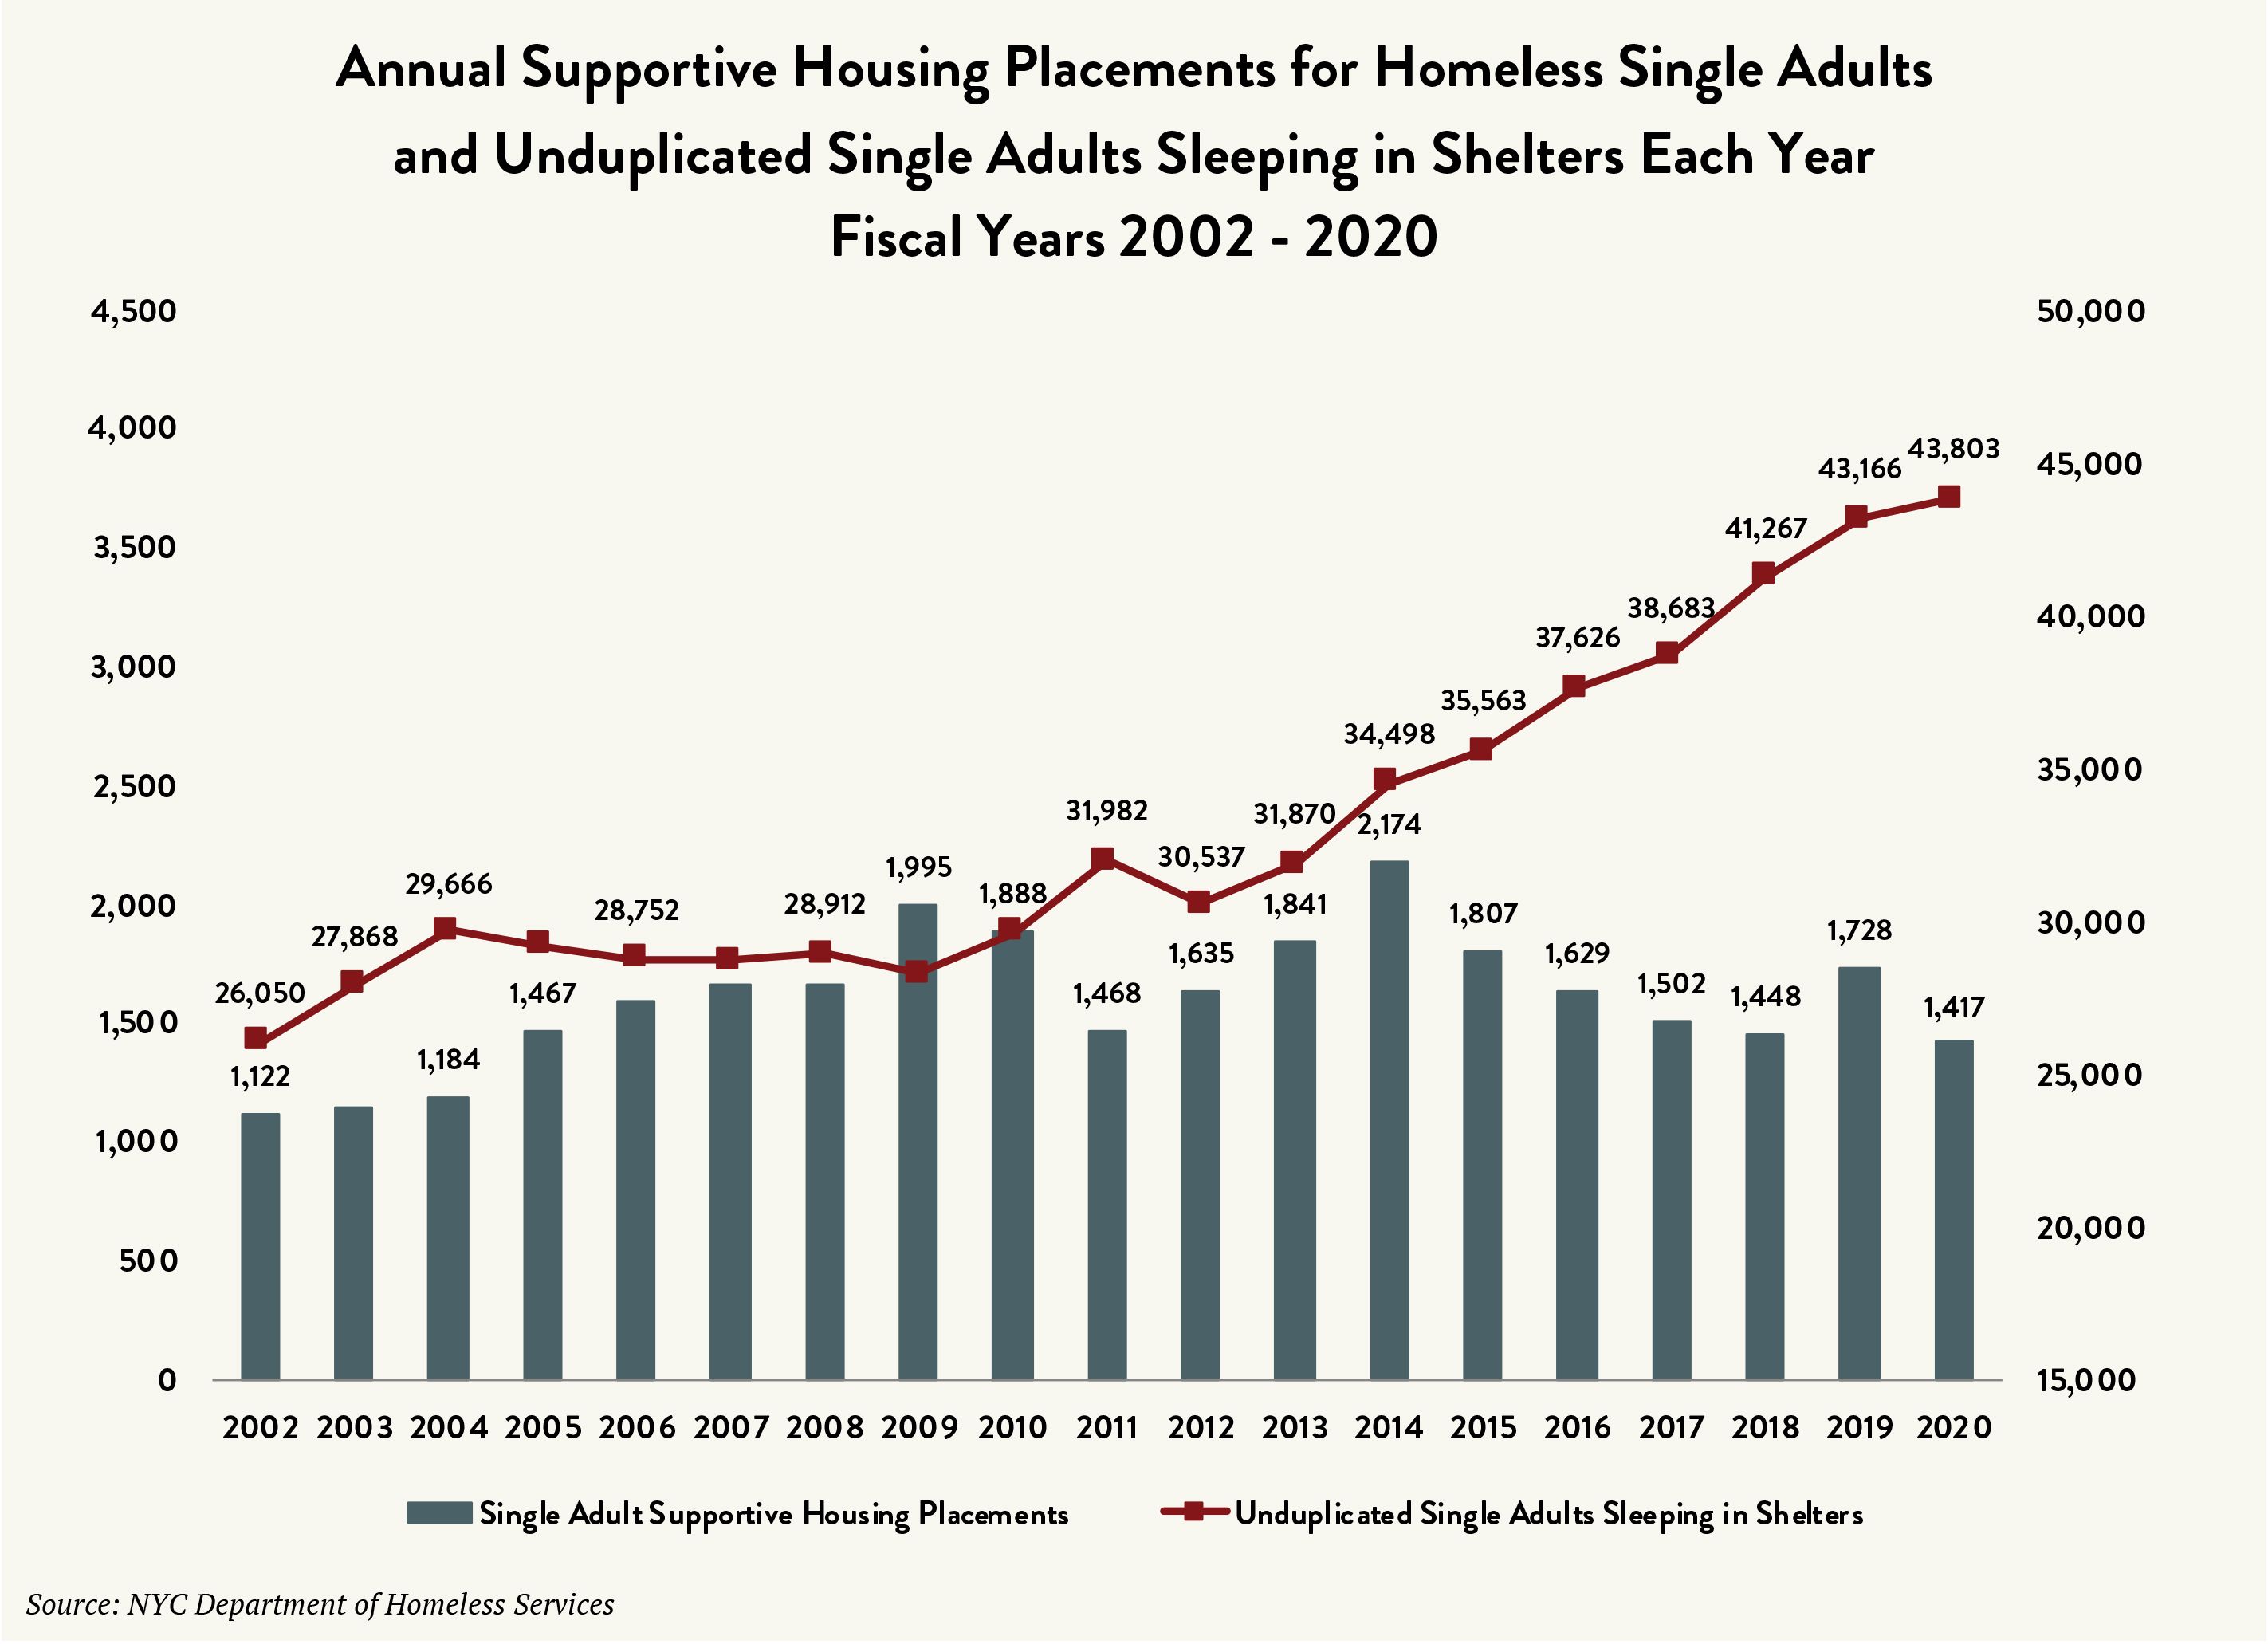 """A graph labeled """"Annual Supportive Housing Placements for Homeless Single Adults and Unduplicated Single Adults Sleeping in Shelters Each Year Fiscal Years 2002 - 2020."""" The vertical axes list numbers 0 to 4,500 in increments of 500 on the left, and numbers 15,000 to 50,000 in increments of 5,000 on the right. The horizontal axis lists the years 2002 through 2020. At each year is a gray bar that lists single adult supportive housing placements, with a value of 1,417 for the year 2020. A dark red line marks the unduplicated number of single adults sleeping in shelters, with a value of 43,803 for the year 2020."""